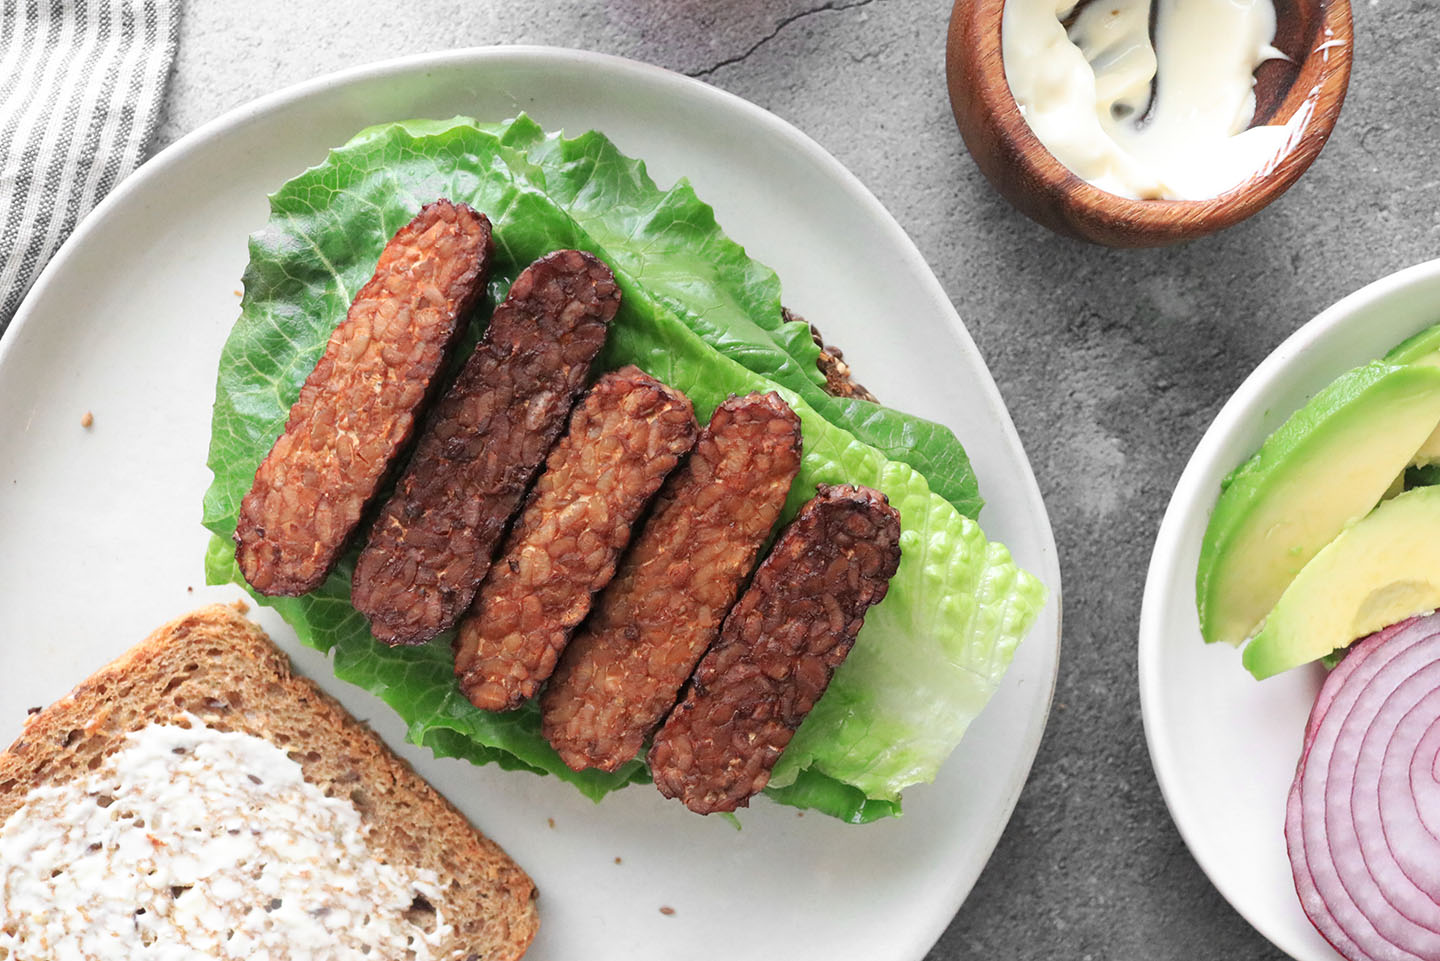 tempeh bacon on a bed of lettuce